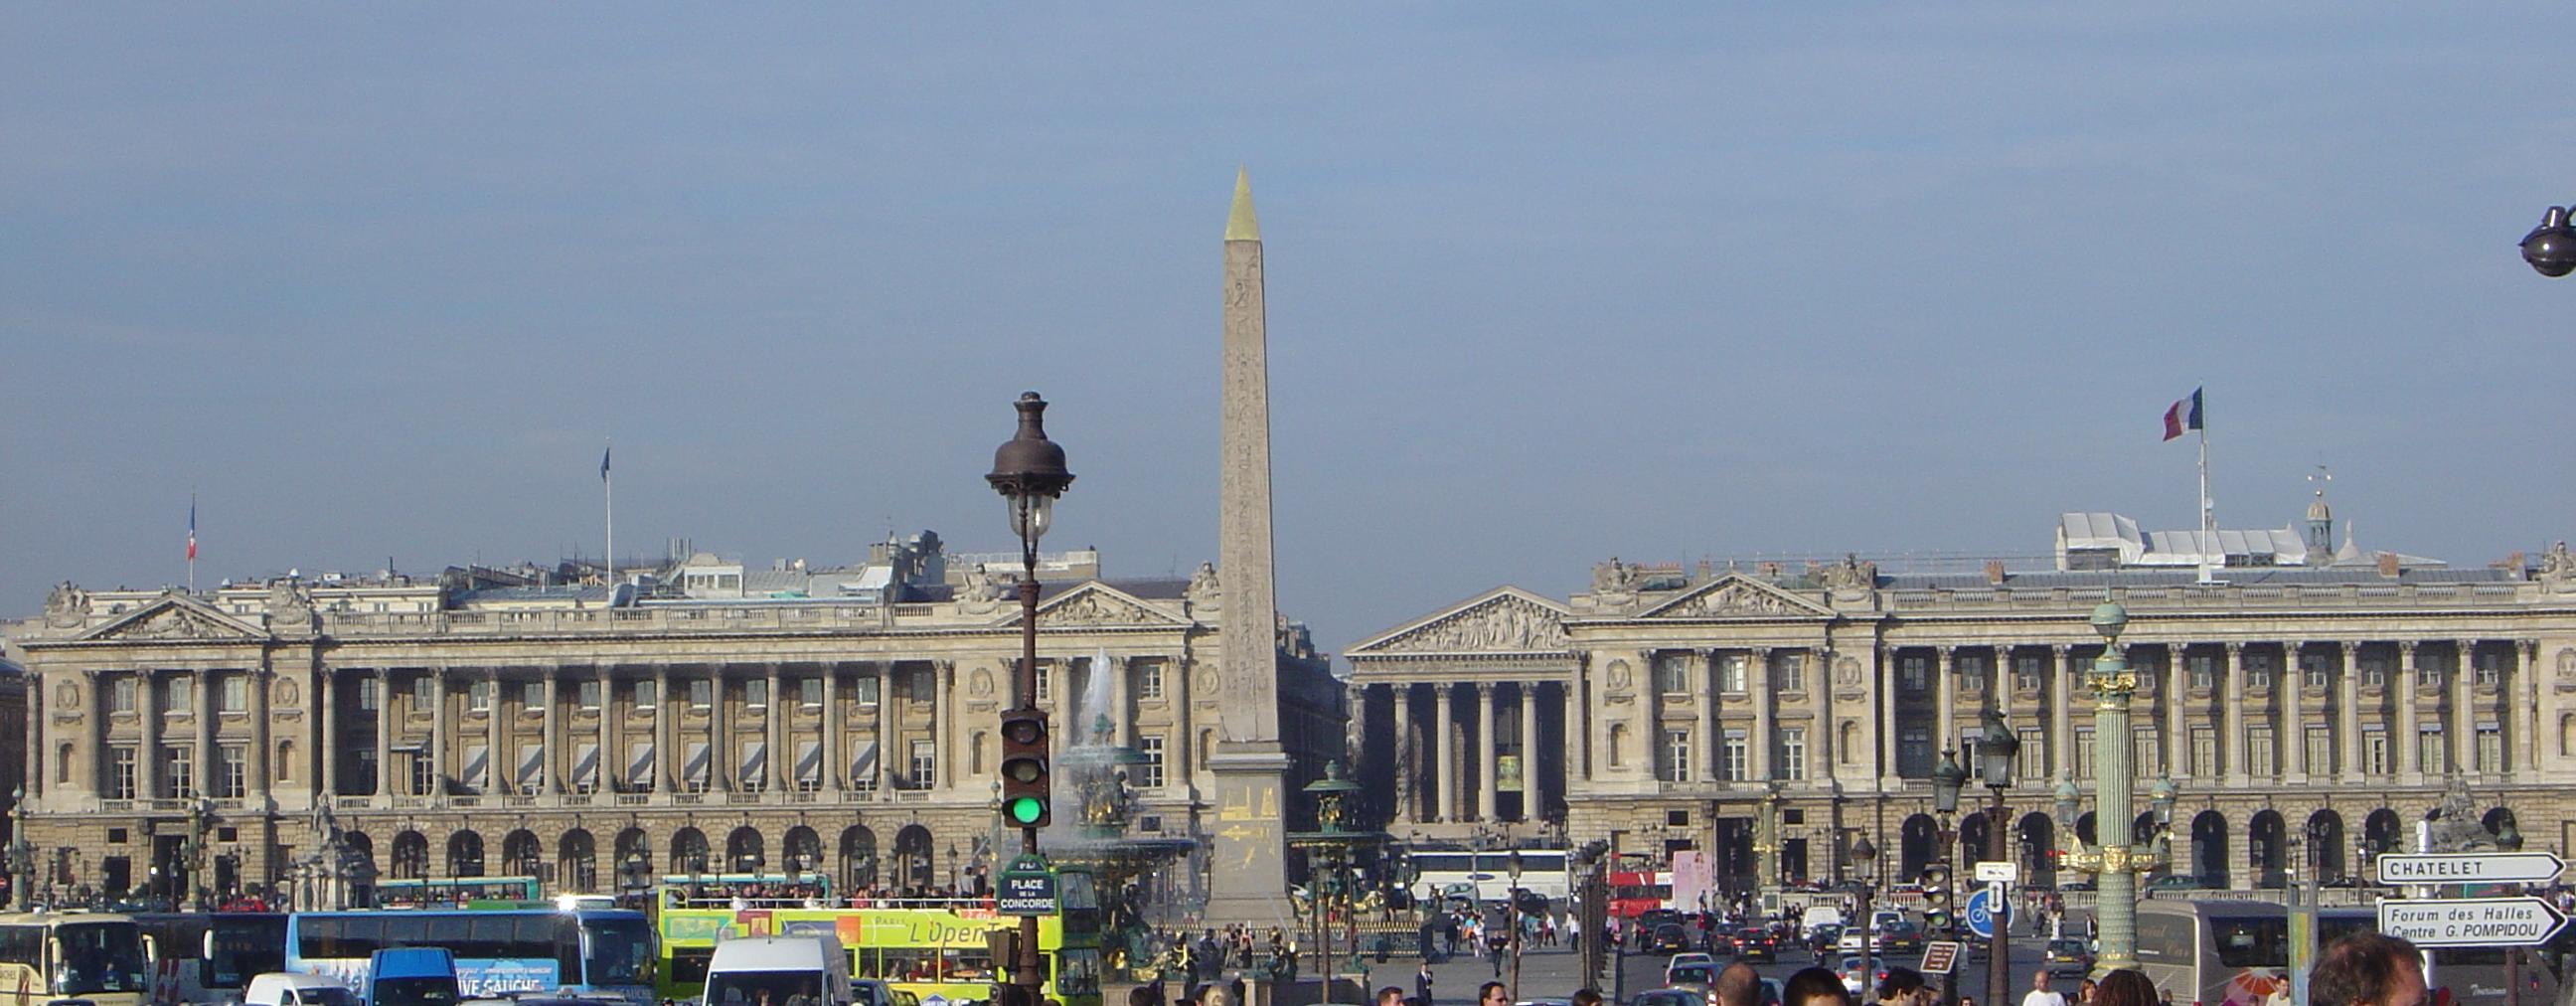 place de la concorde wikiwand. Black Bedroom Furniture Sets. Home Design Ideas